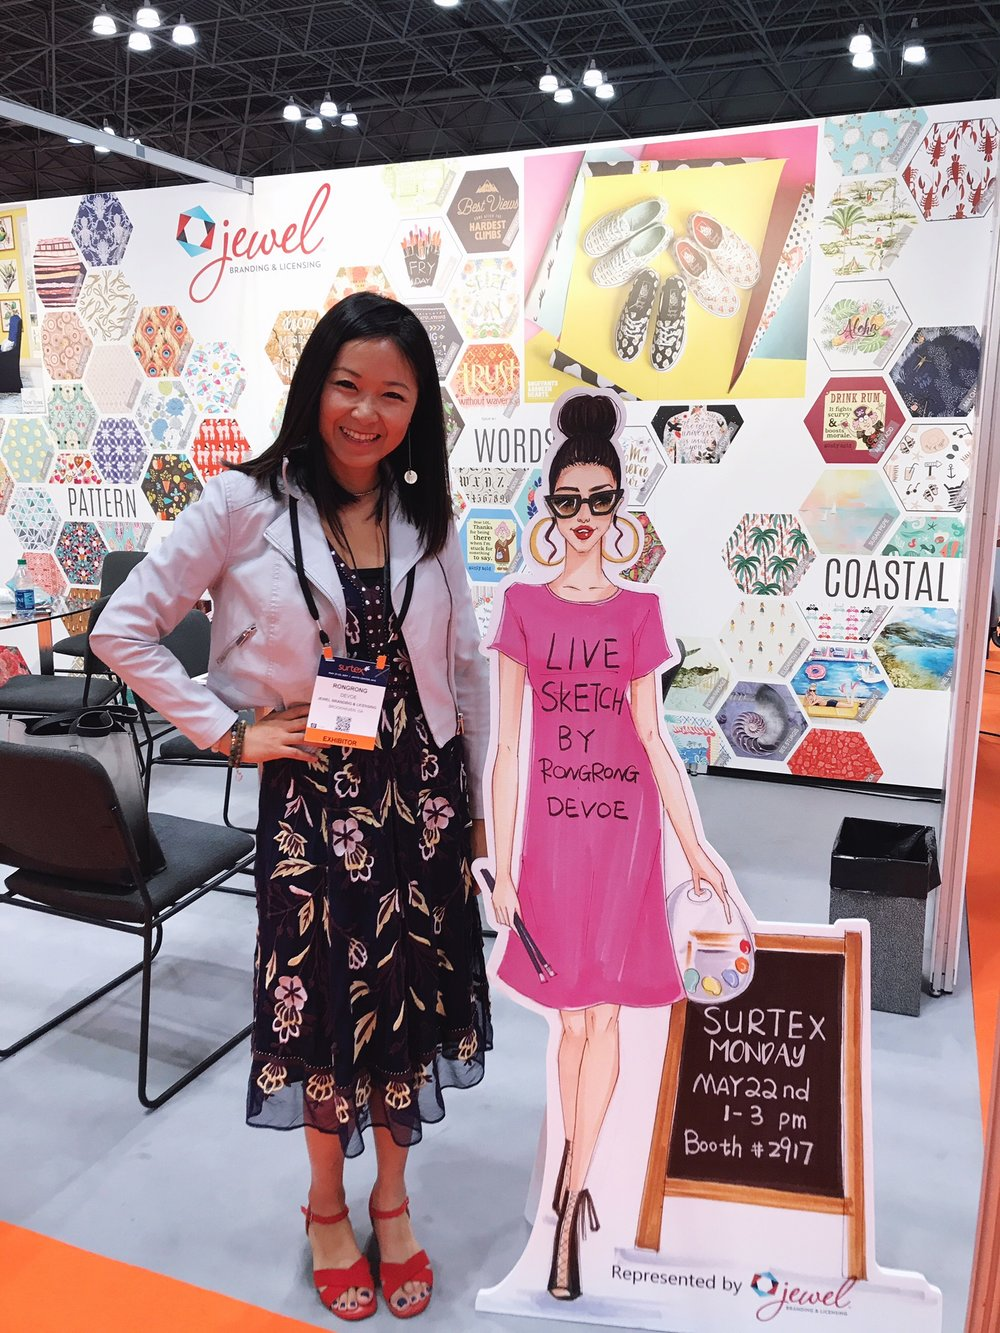 Licensing Artist Rongrong DeVoe at Jewel Branding booth at Surtex 2017